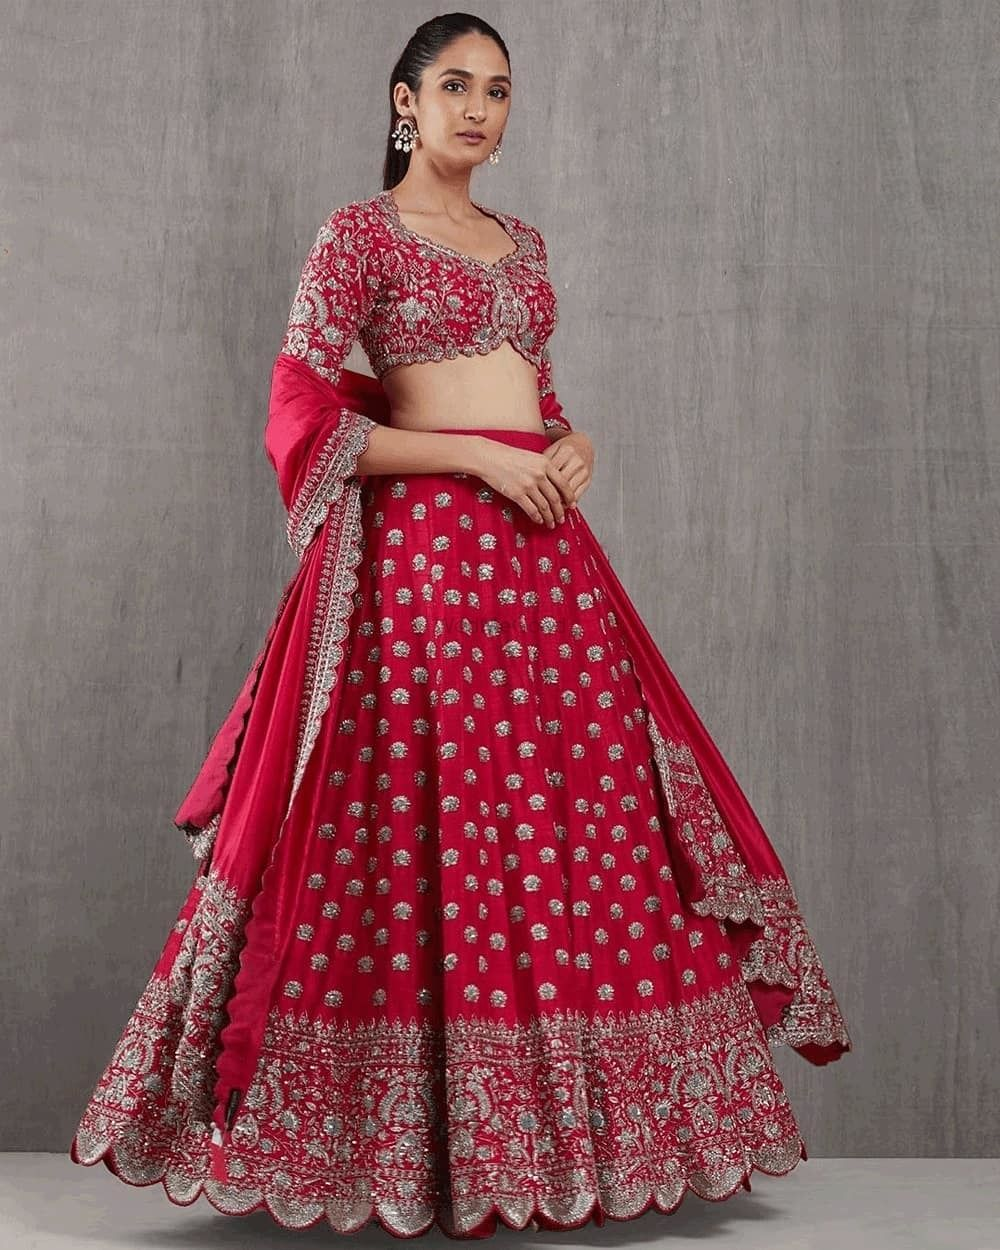 Photo of Beautiful red bridal lehenga with silver work